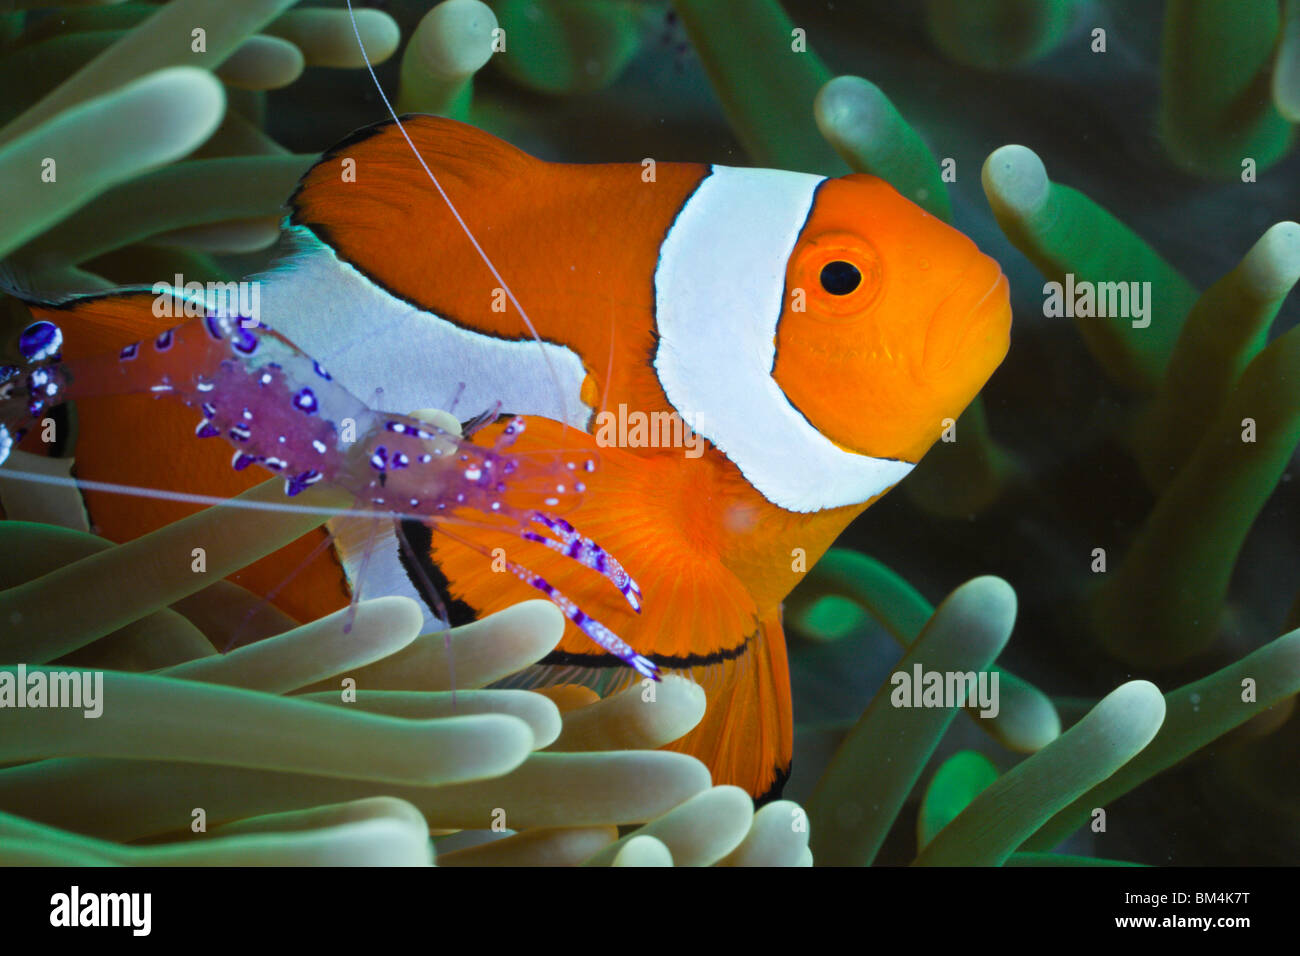 Anemone Shrimp and Clown Anemonefish, Periclimenes tosaensis, Amphiprion ocellaris, Raja Ampat, West Papua, Indonesia - Stock Image